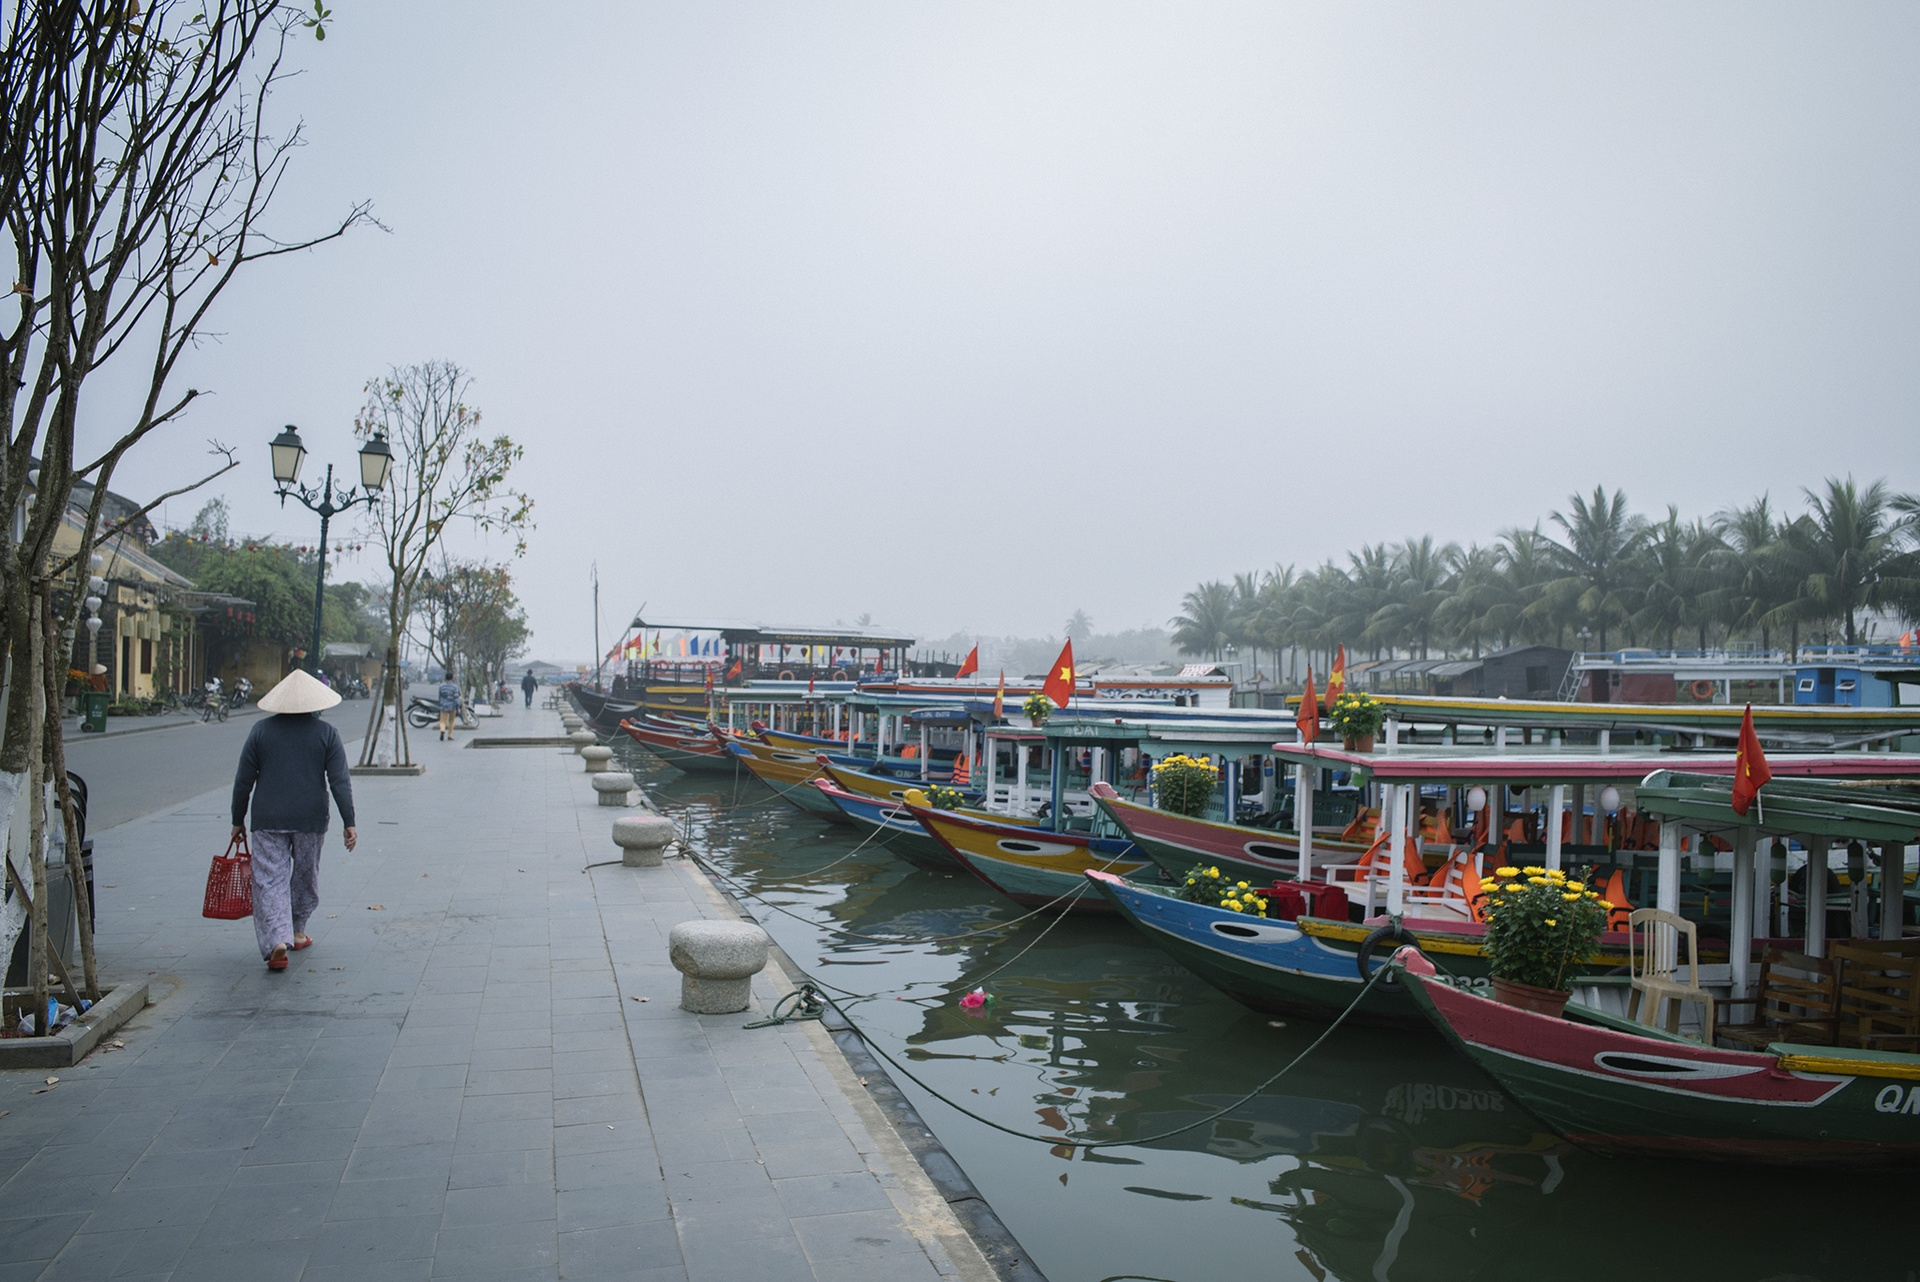 canh dep du lich Hoi An anh 5